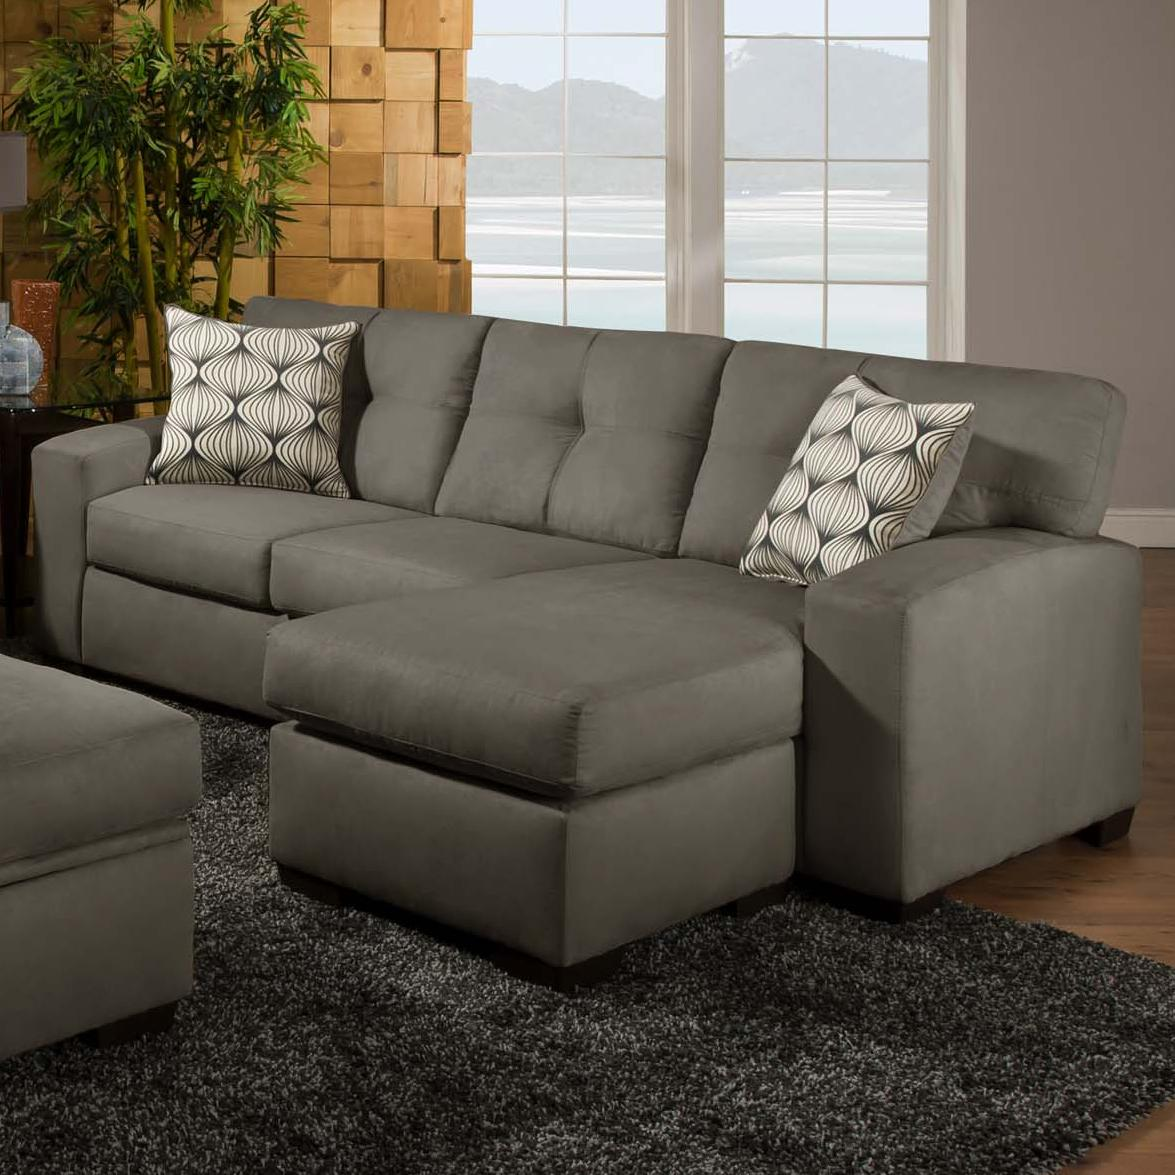 American Furniture 5100 Group Sofa Chaise Ottoman - Item Number: 5107-9335